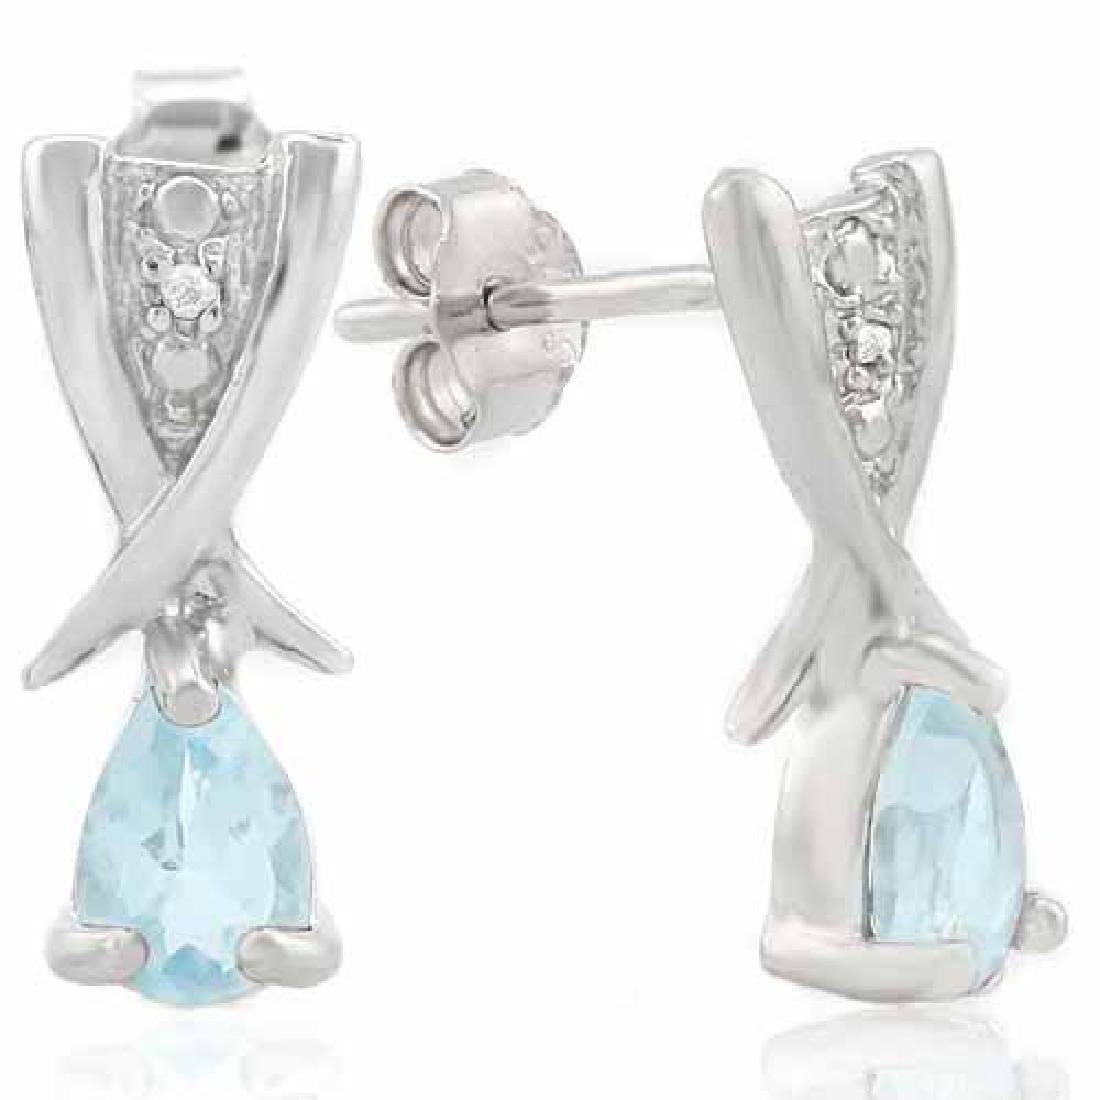 4/5 CARAT BABY SWISS BLUE TOPAZ & DIAMOND 925 STERLING